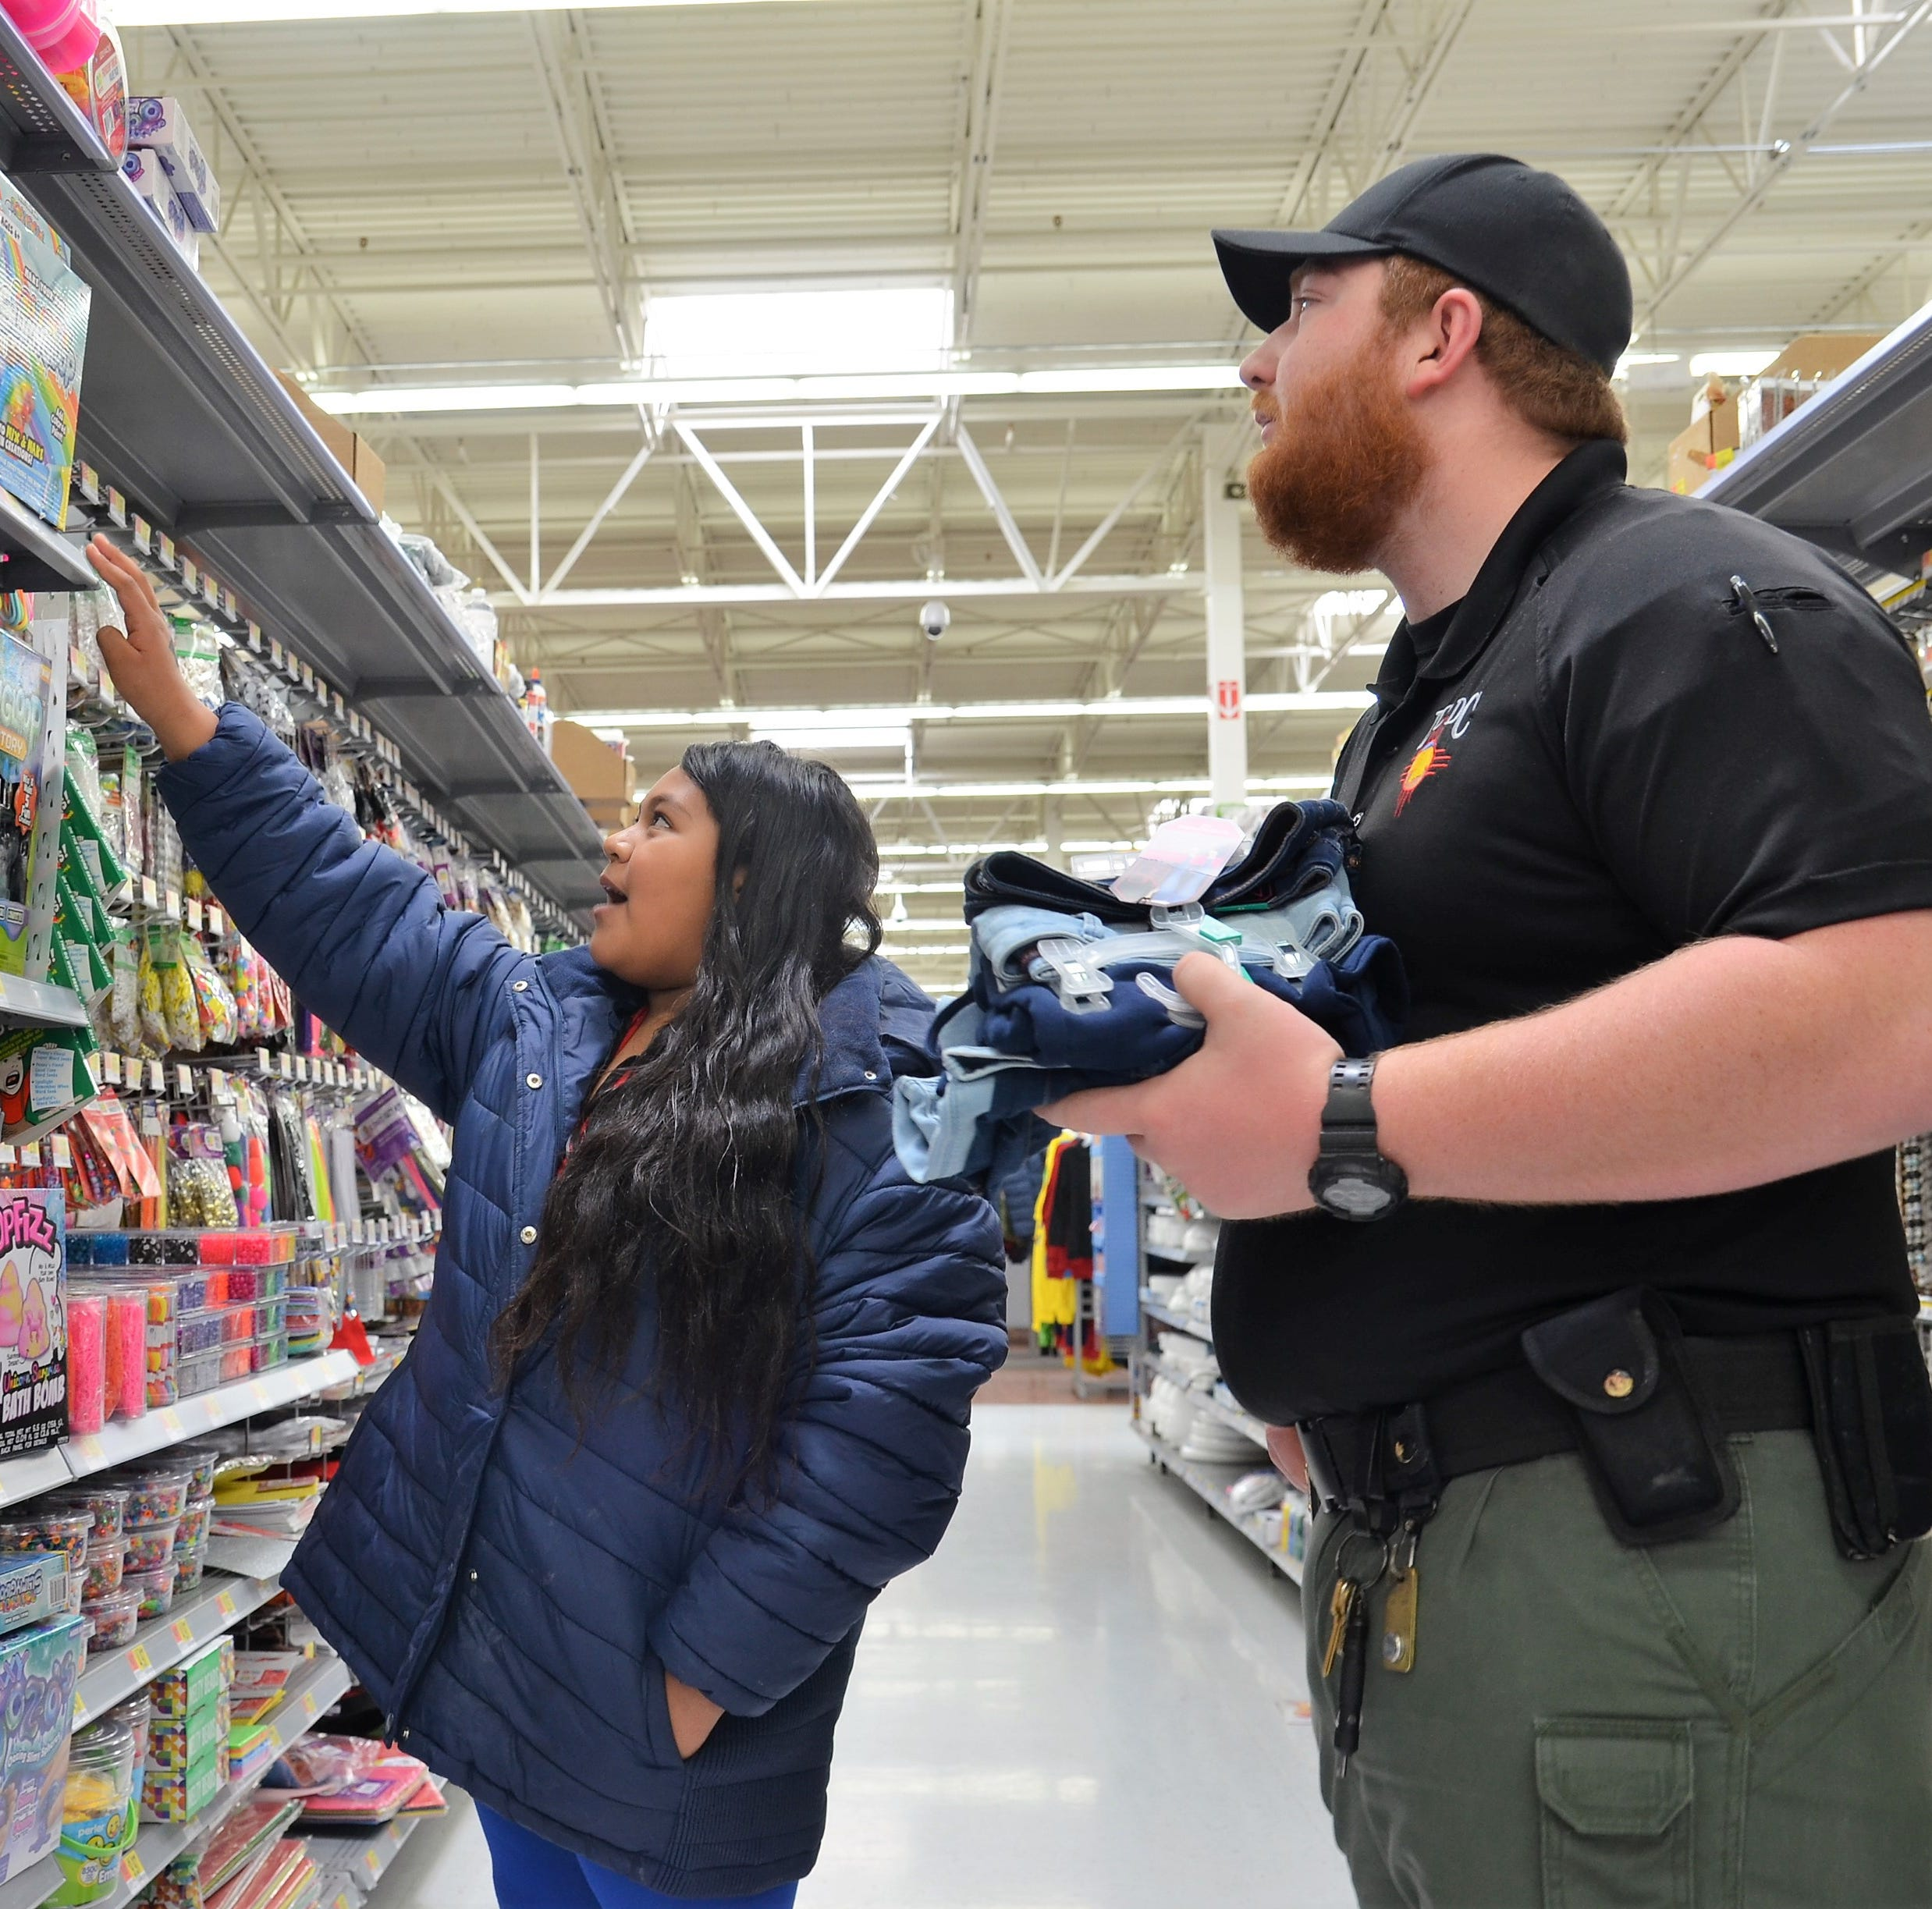 Local law enforcement get in holiday spirit with Shop with a Cop program in Deming, NM